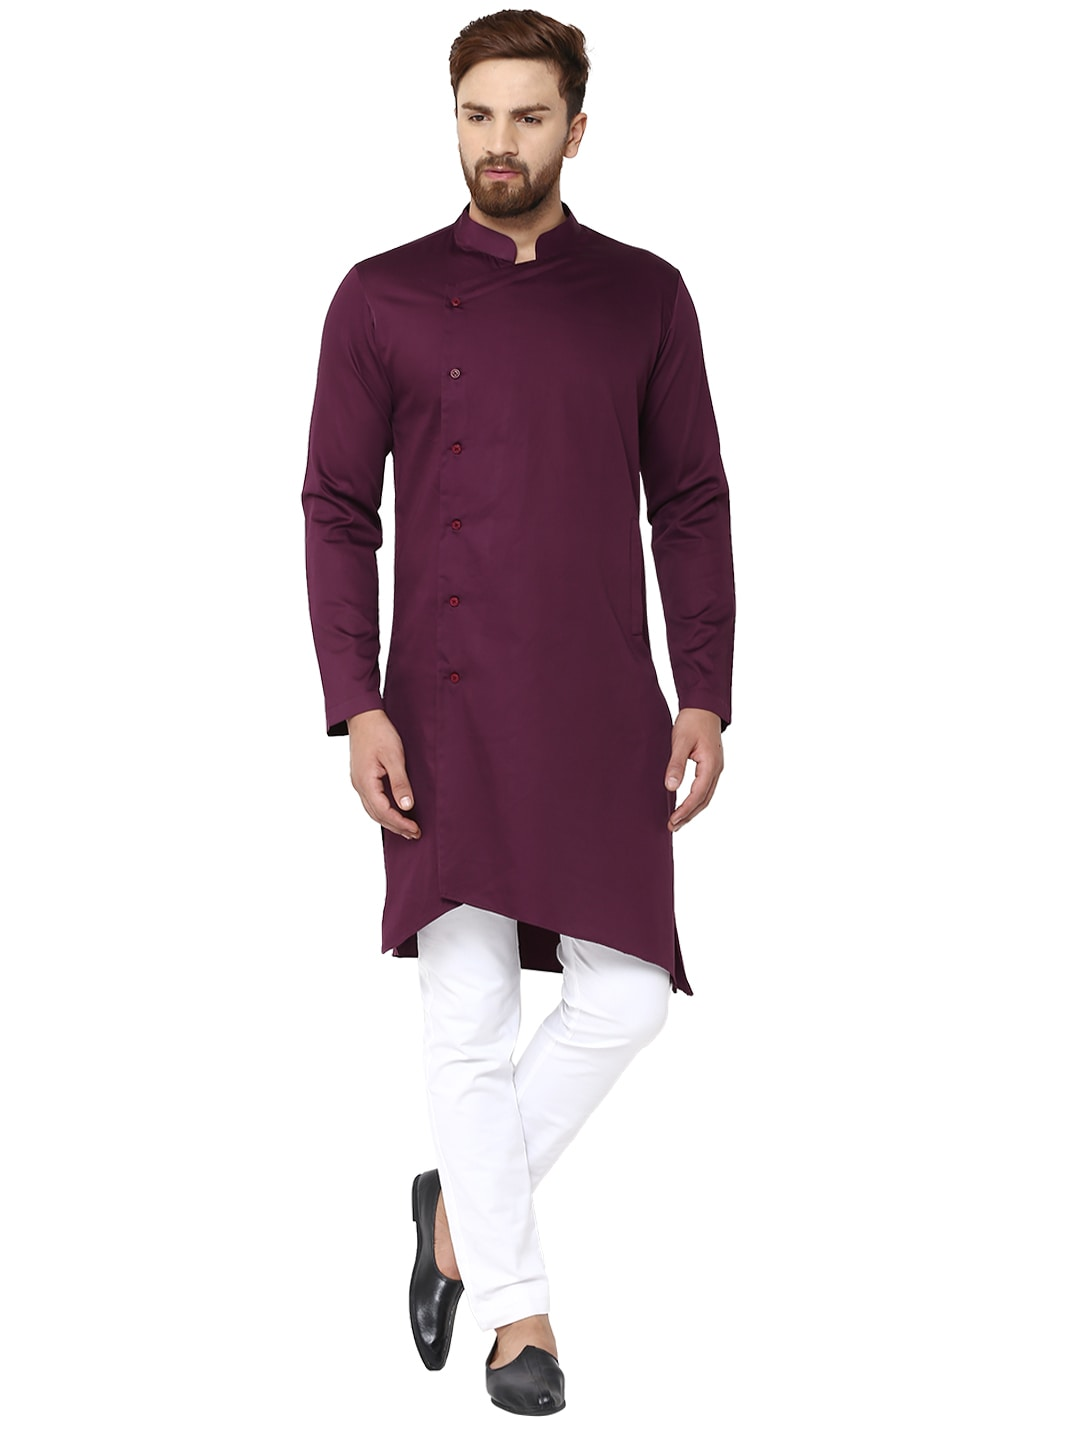 317b144ec11 Asymmetric Men Kurtas - Buy Asymmetric Men Kurtas online in India